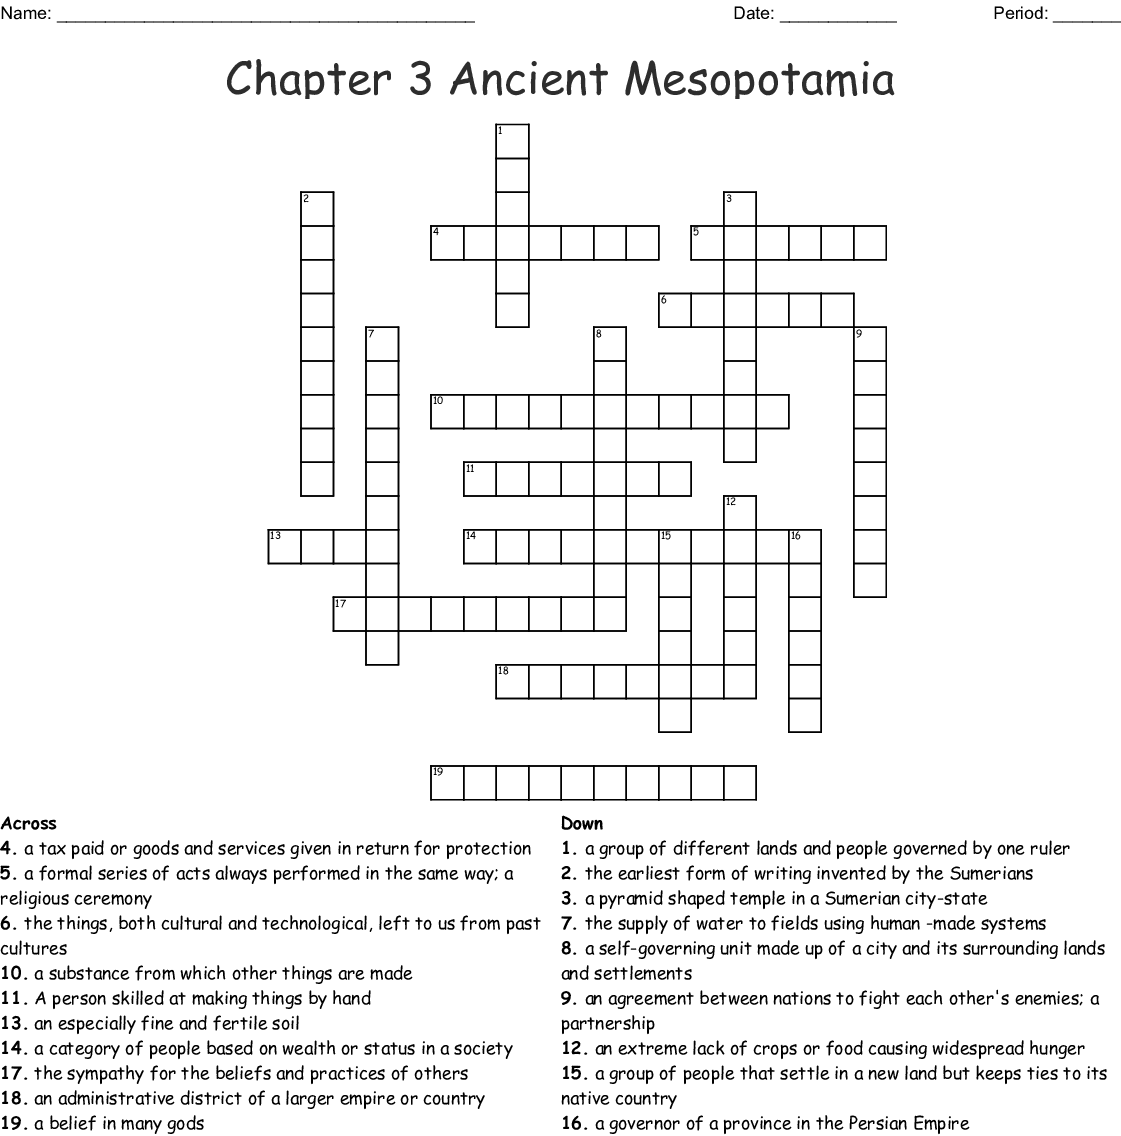 Chapter 3 Ancient Mesopotamia Crossword